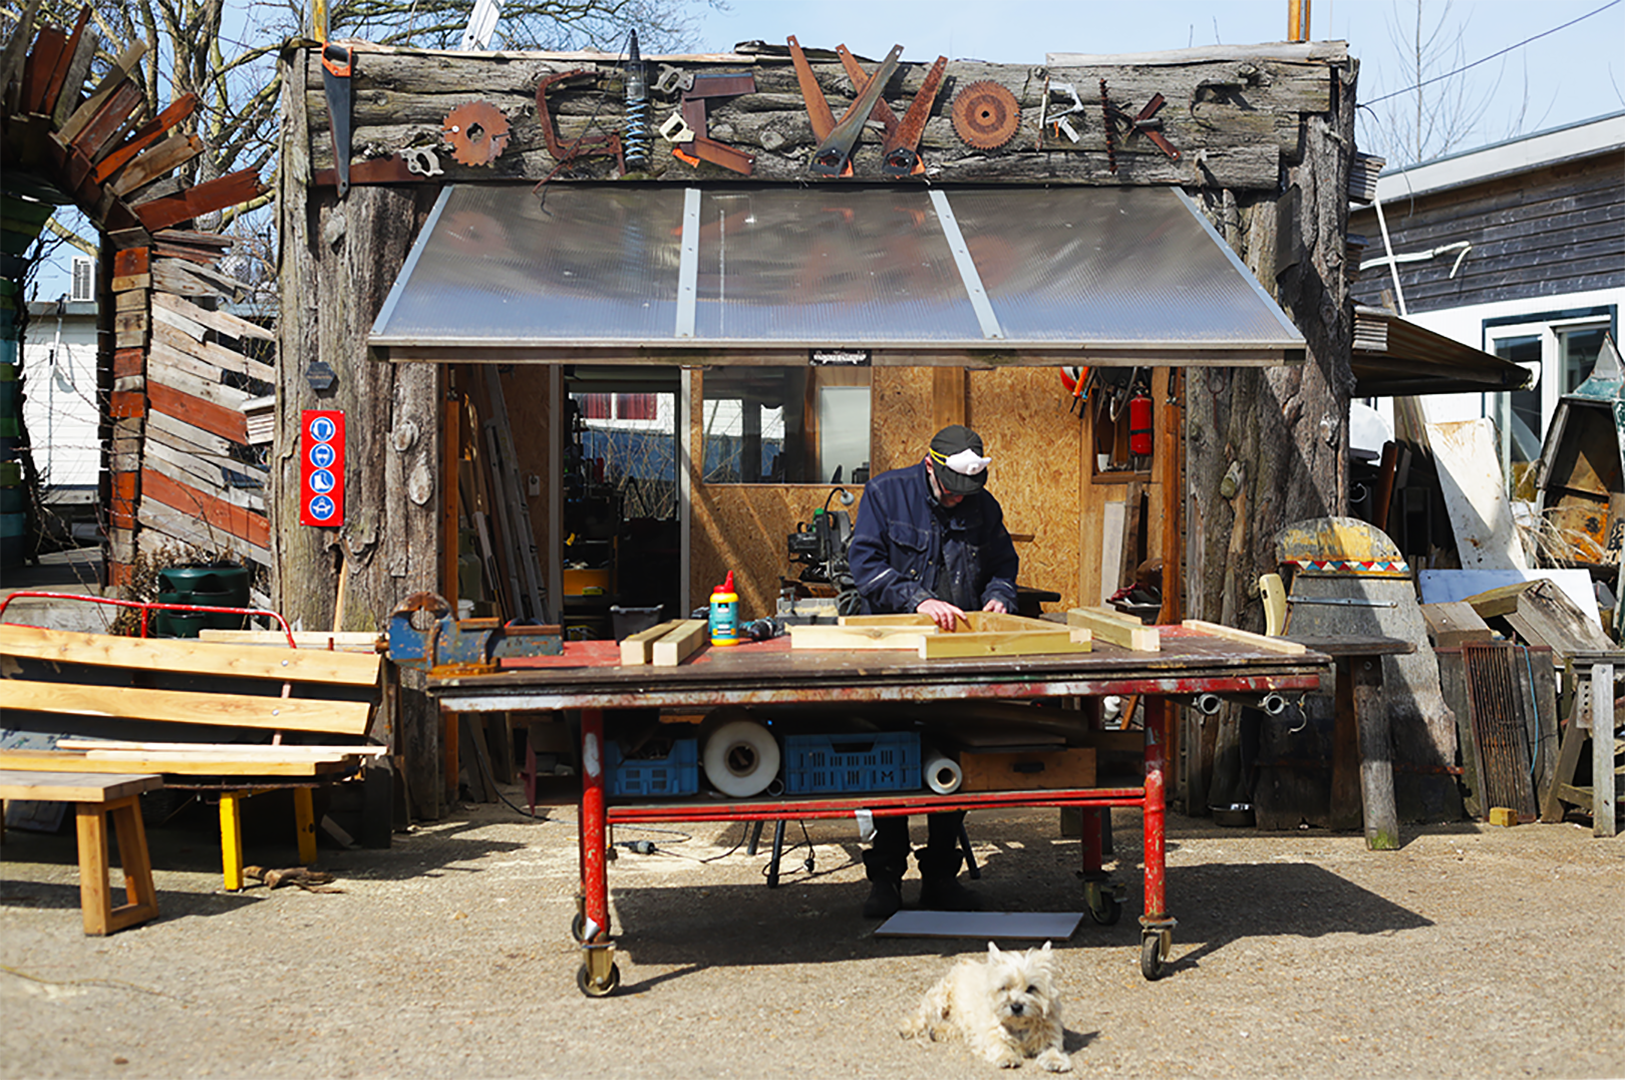 A woodworker contributing to the De Cuevel community, Amsterdam-Noord